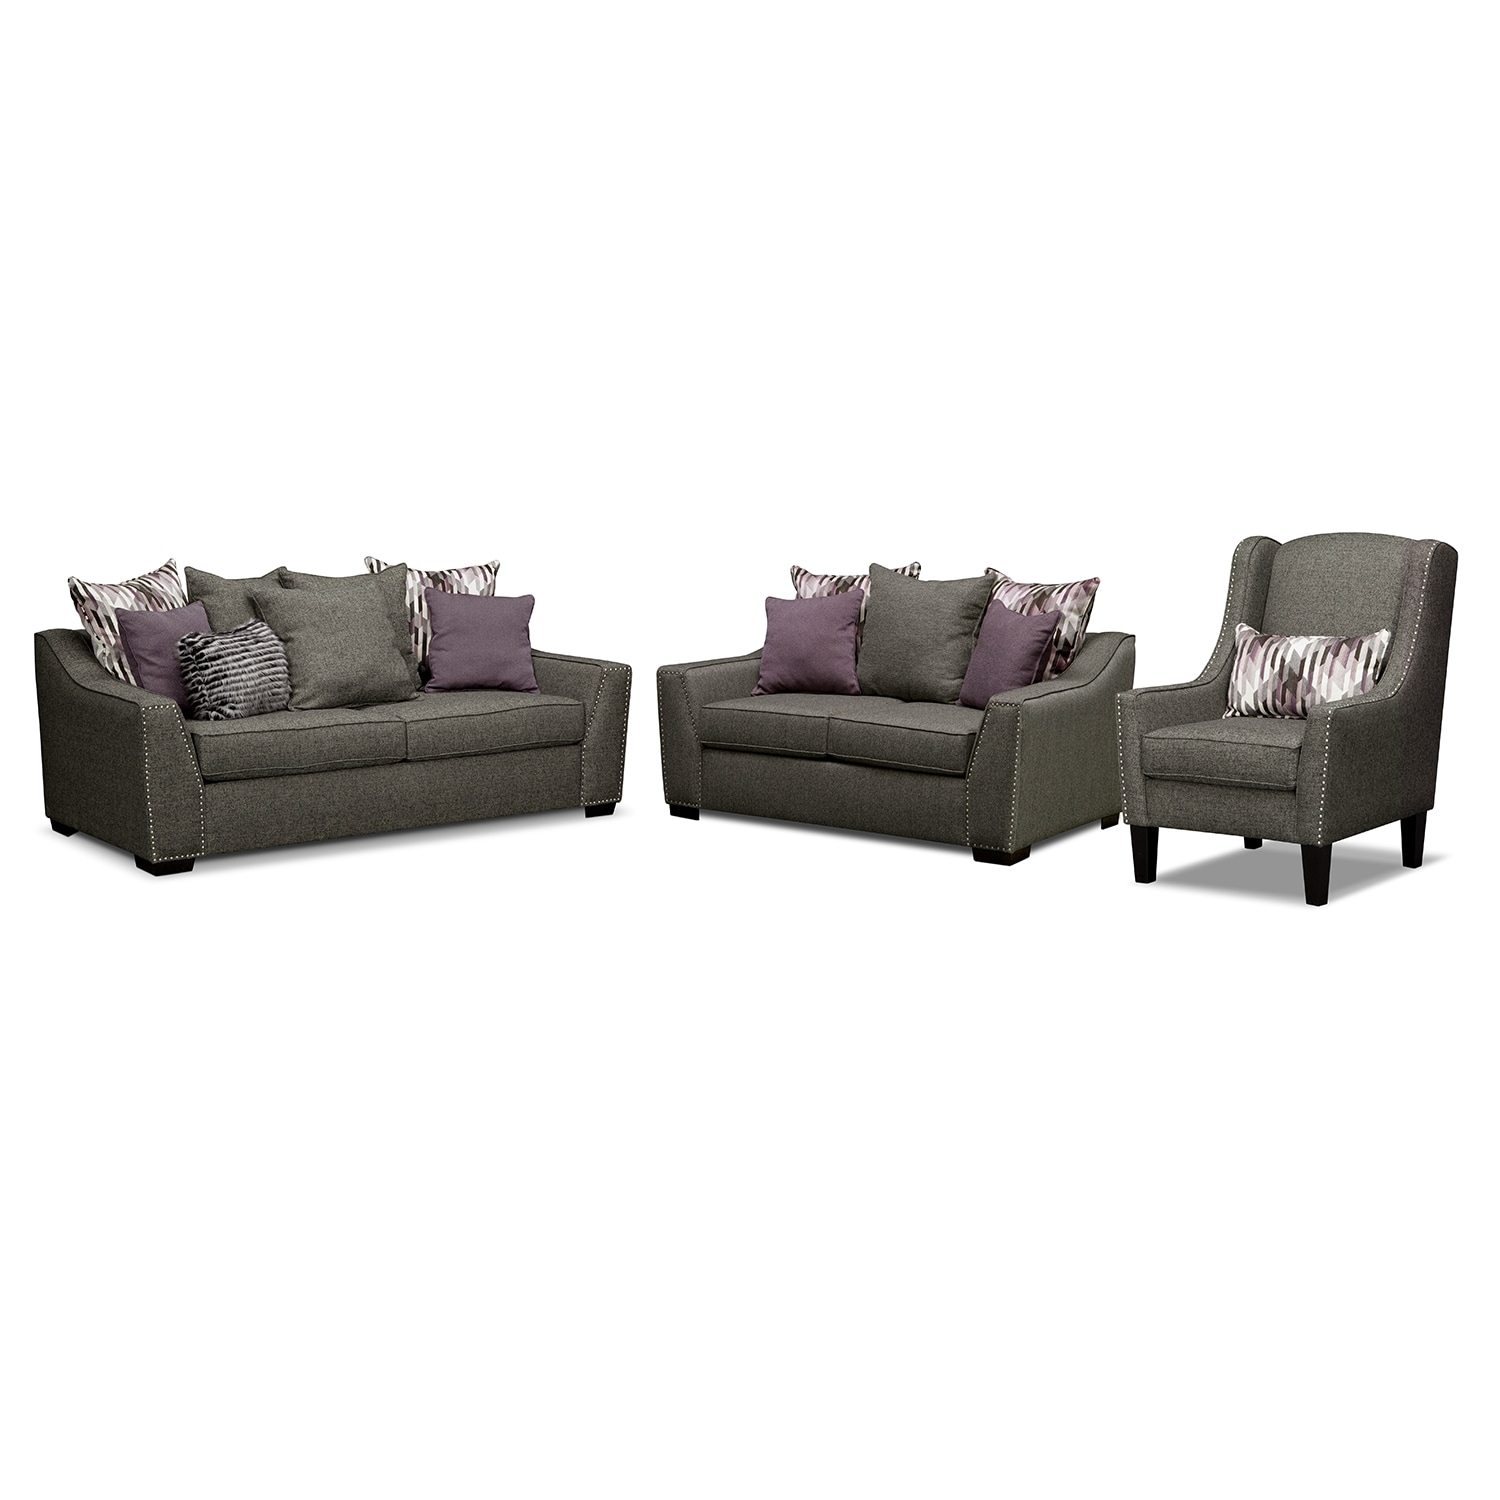 Living Room Furniture - Ritz 3 Pc. Living Room w/Accent Chair